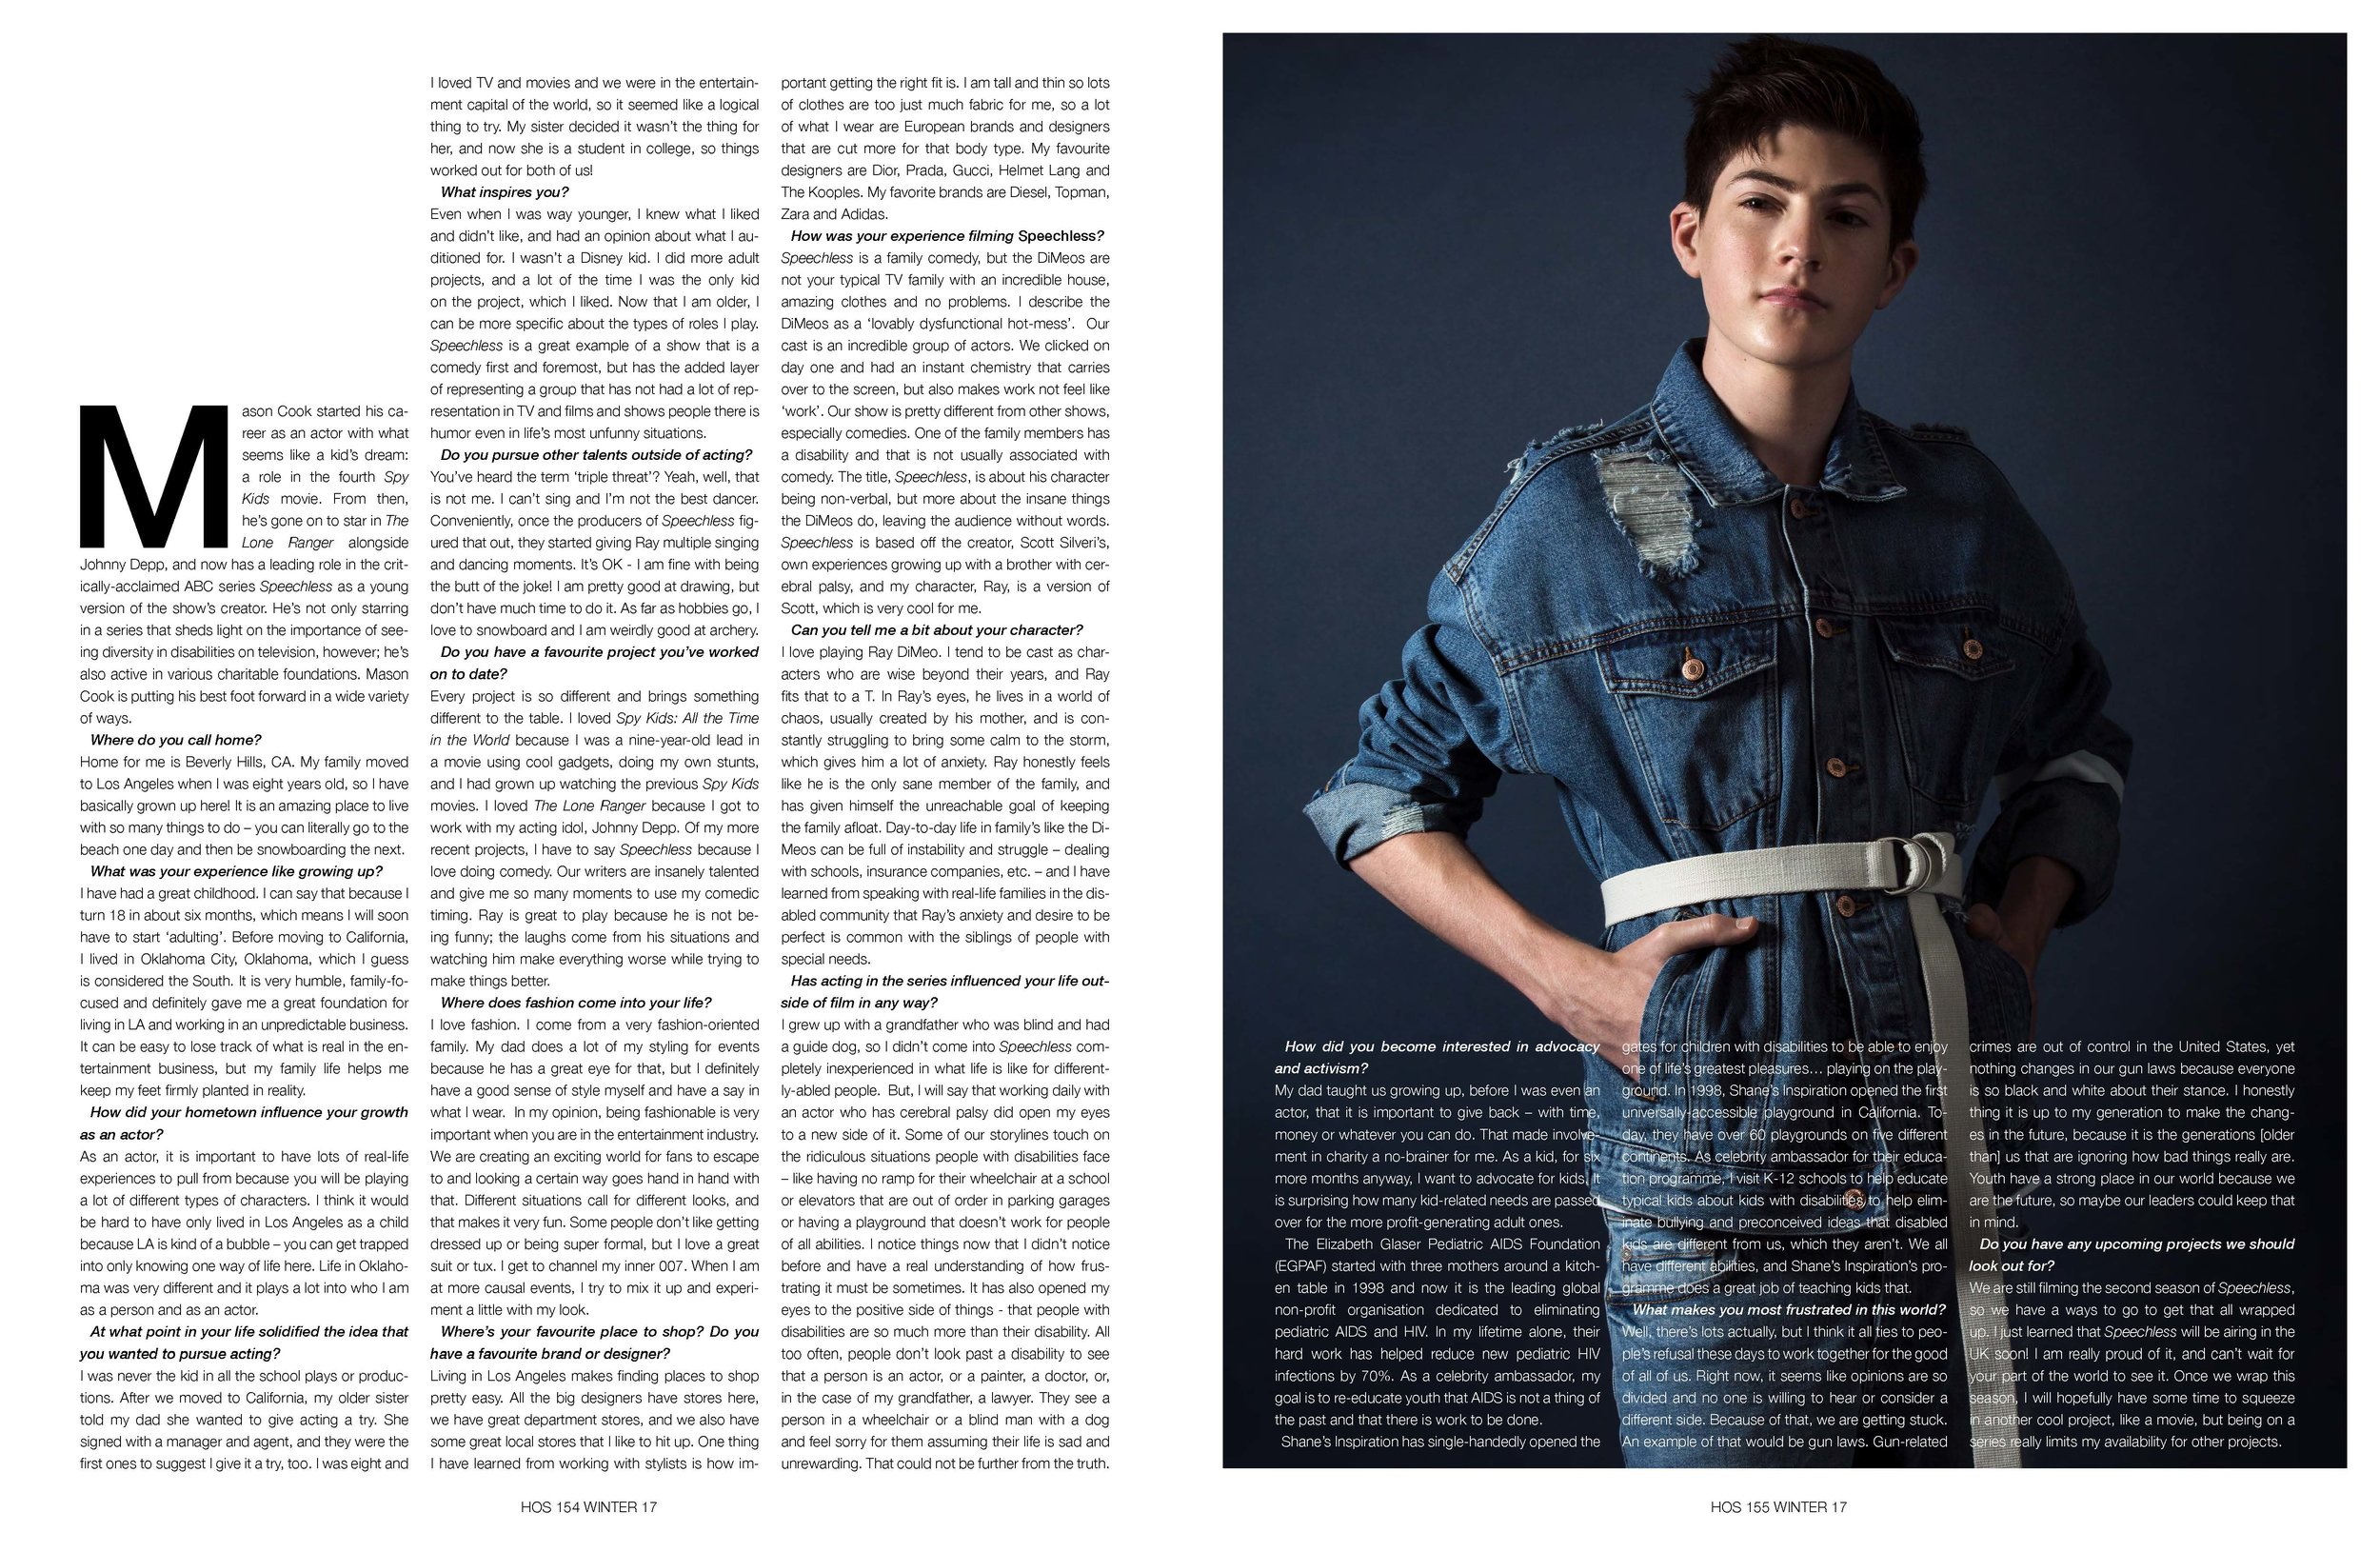 Mason Cook - Interview - 'It can be easy to lose track of what is real in the entertainment business, but my family life helps me keep my feet firmly planted in reality.'(Photographer: Ted Sun // Retoucher: Emerald Monzon // Groomer: Crystal Tran for Exclusive Artists using Malin + Goetz // Stylist: Philippe Uter)